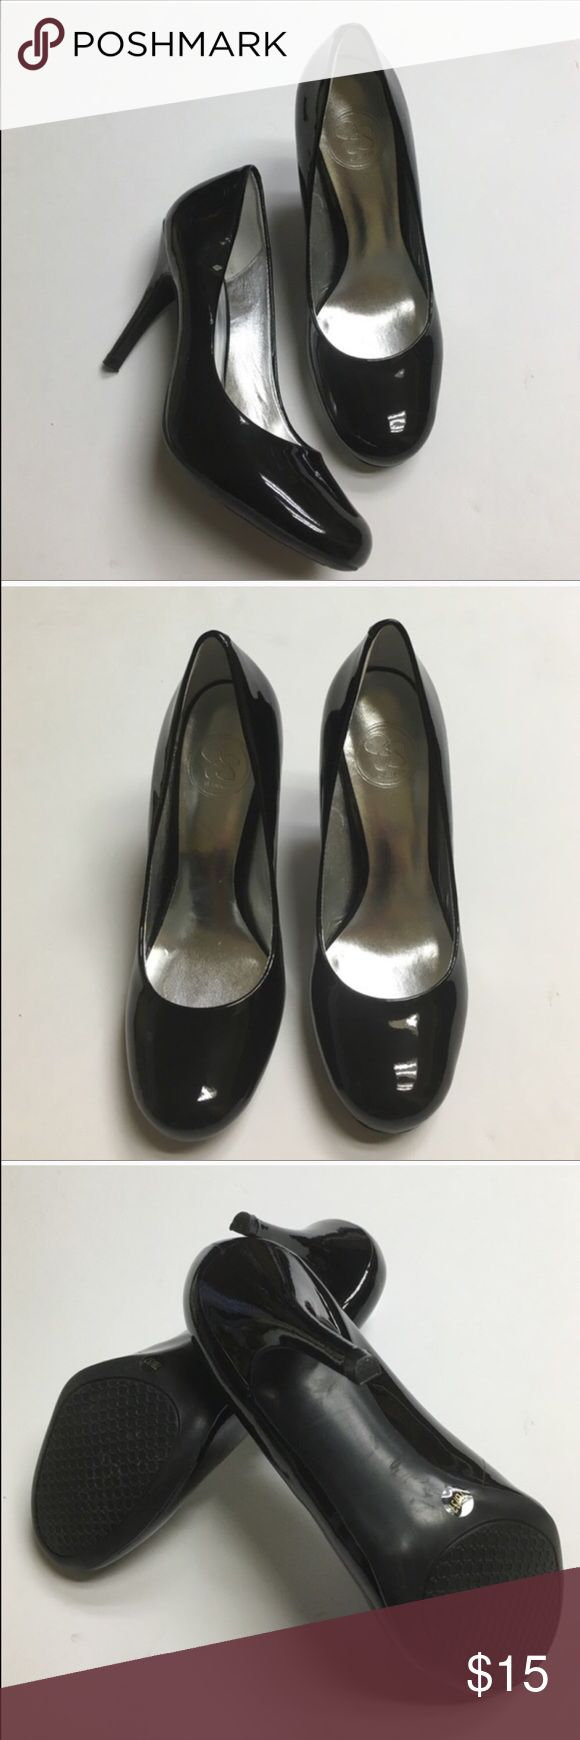 Jessica Simpson heels Black patten 4 in heel. Make me an offer Jessica Simpson Shoes